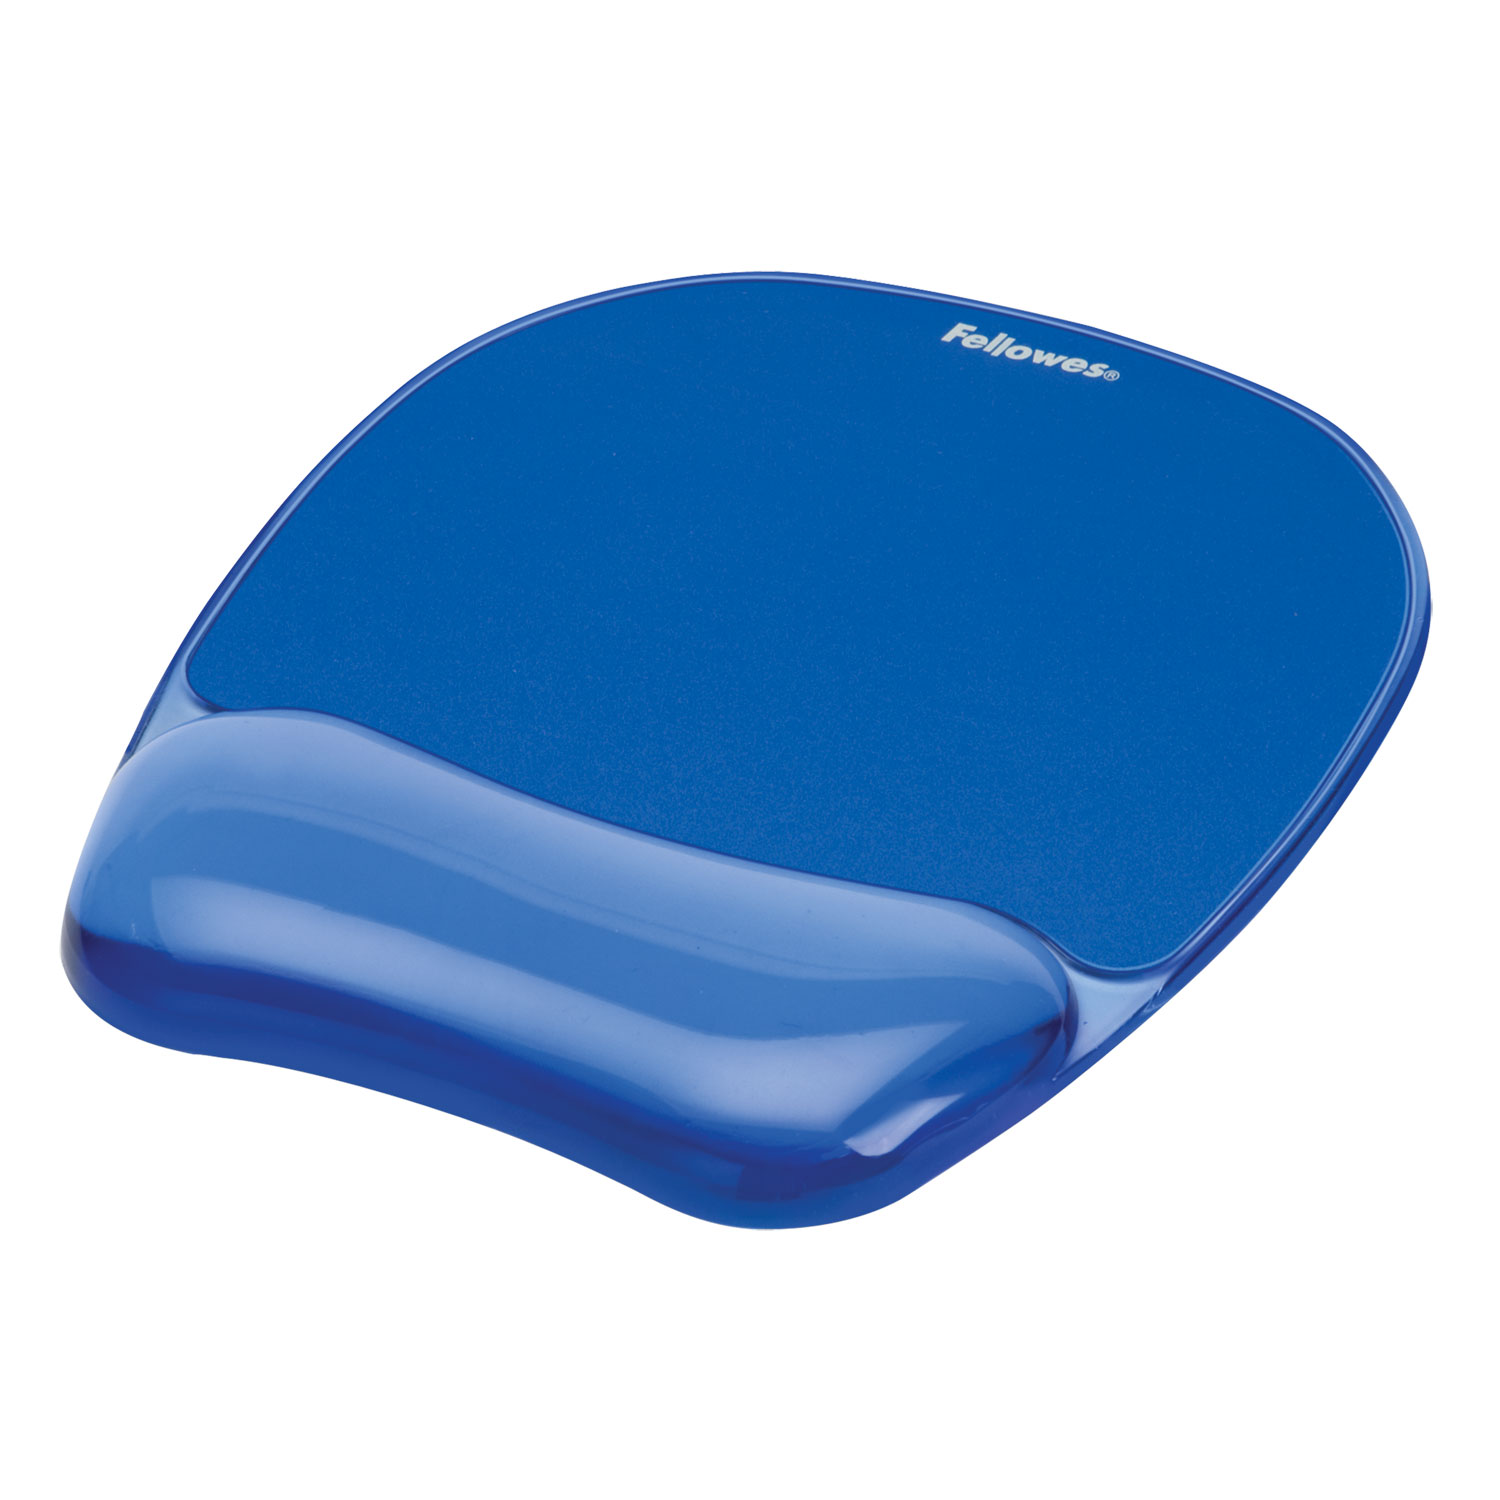 """Gel Crystals Mouse Pad with Wrist Rest, 7.87"""" x 9.18"""", Blue"""